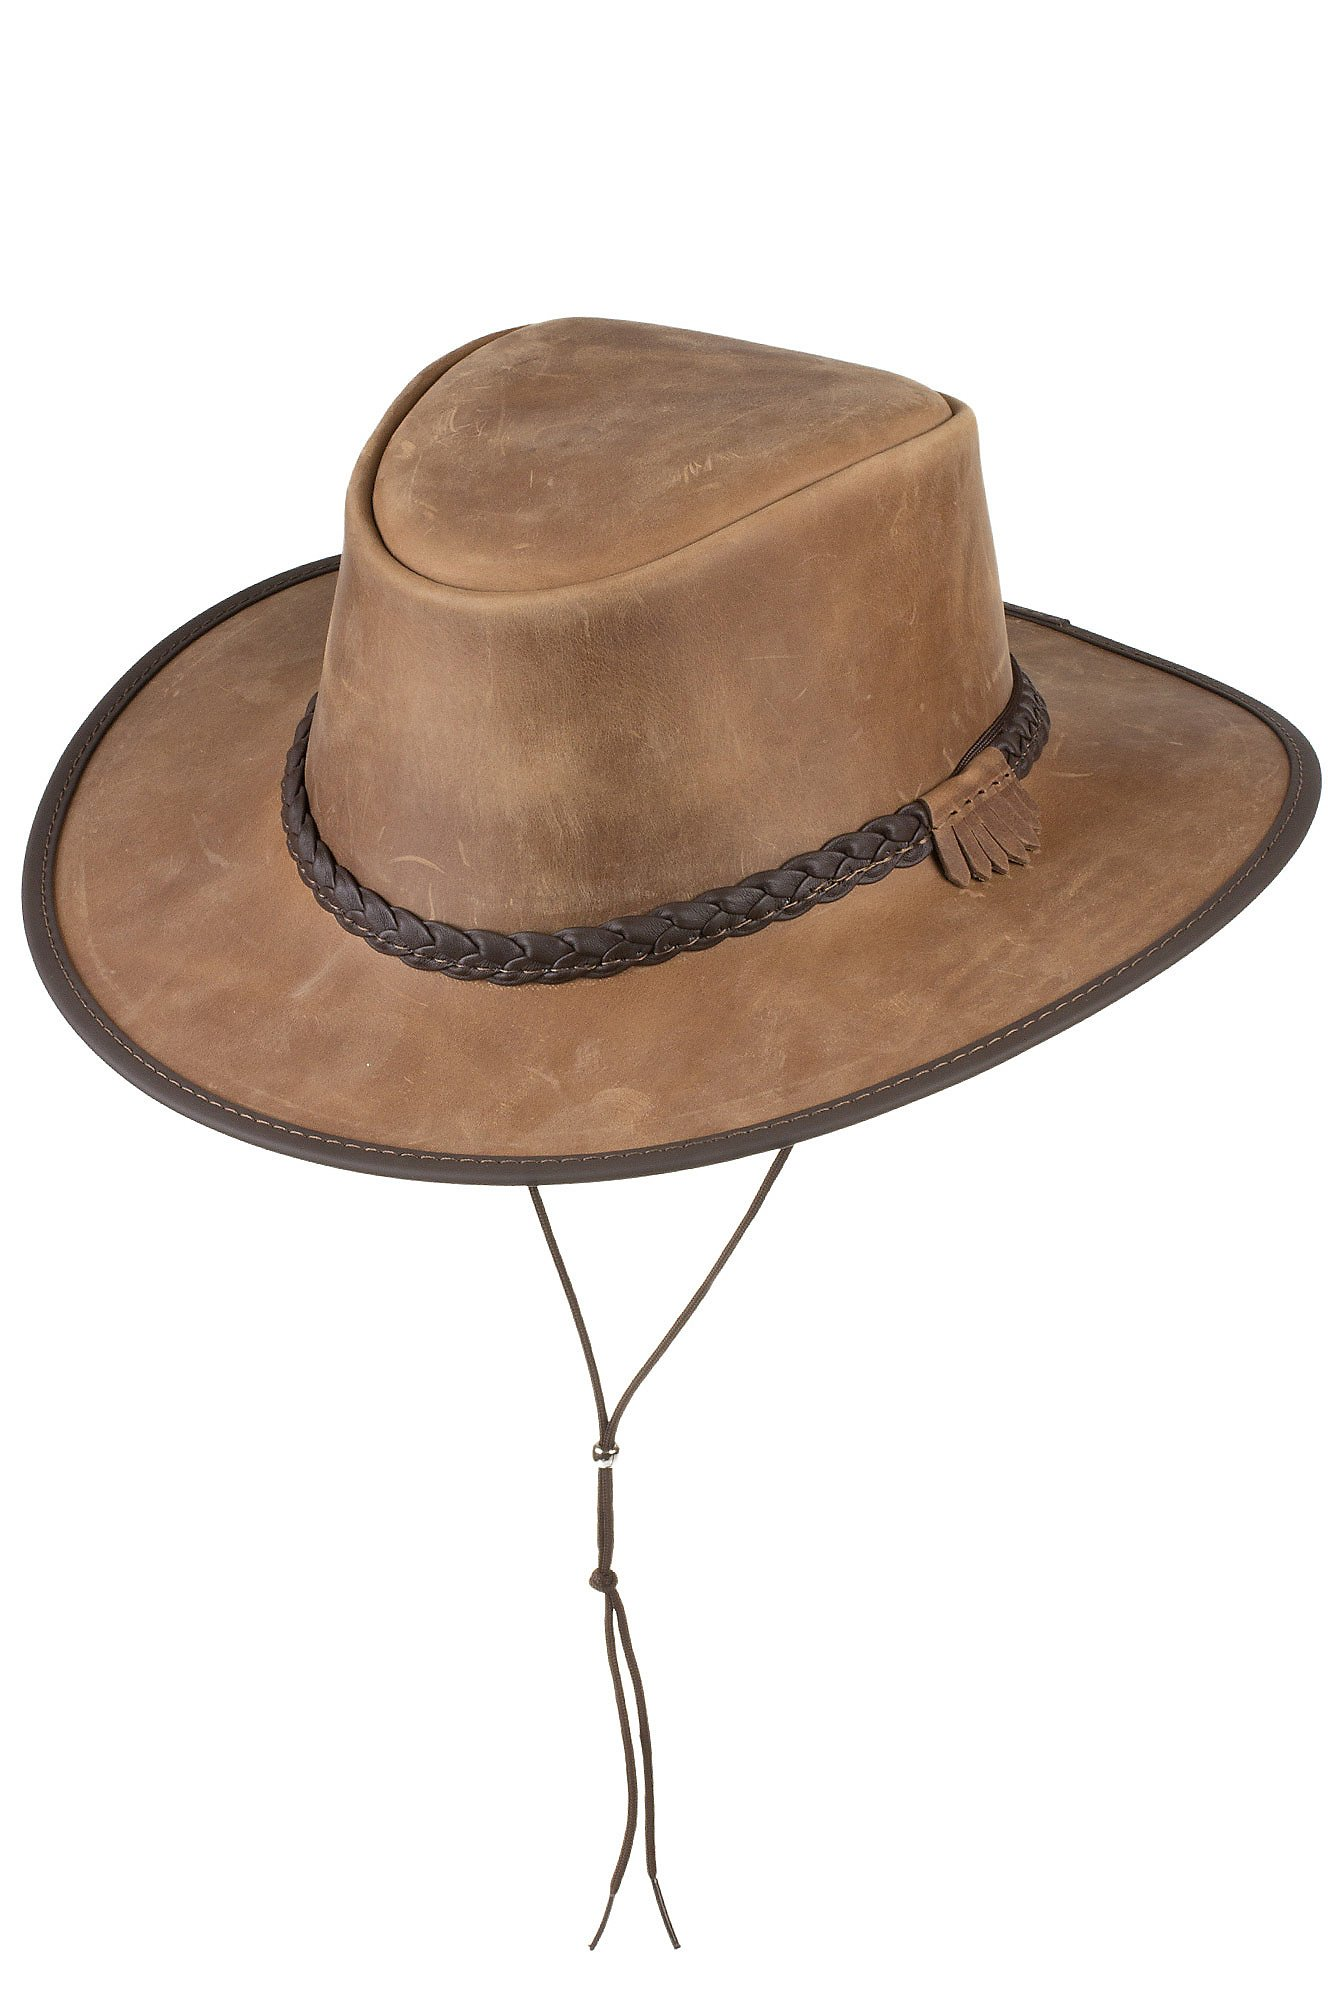 Bravo Leather Cowboy Hat, Pecan, Size XL (7 1/2-7 5/8)